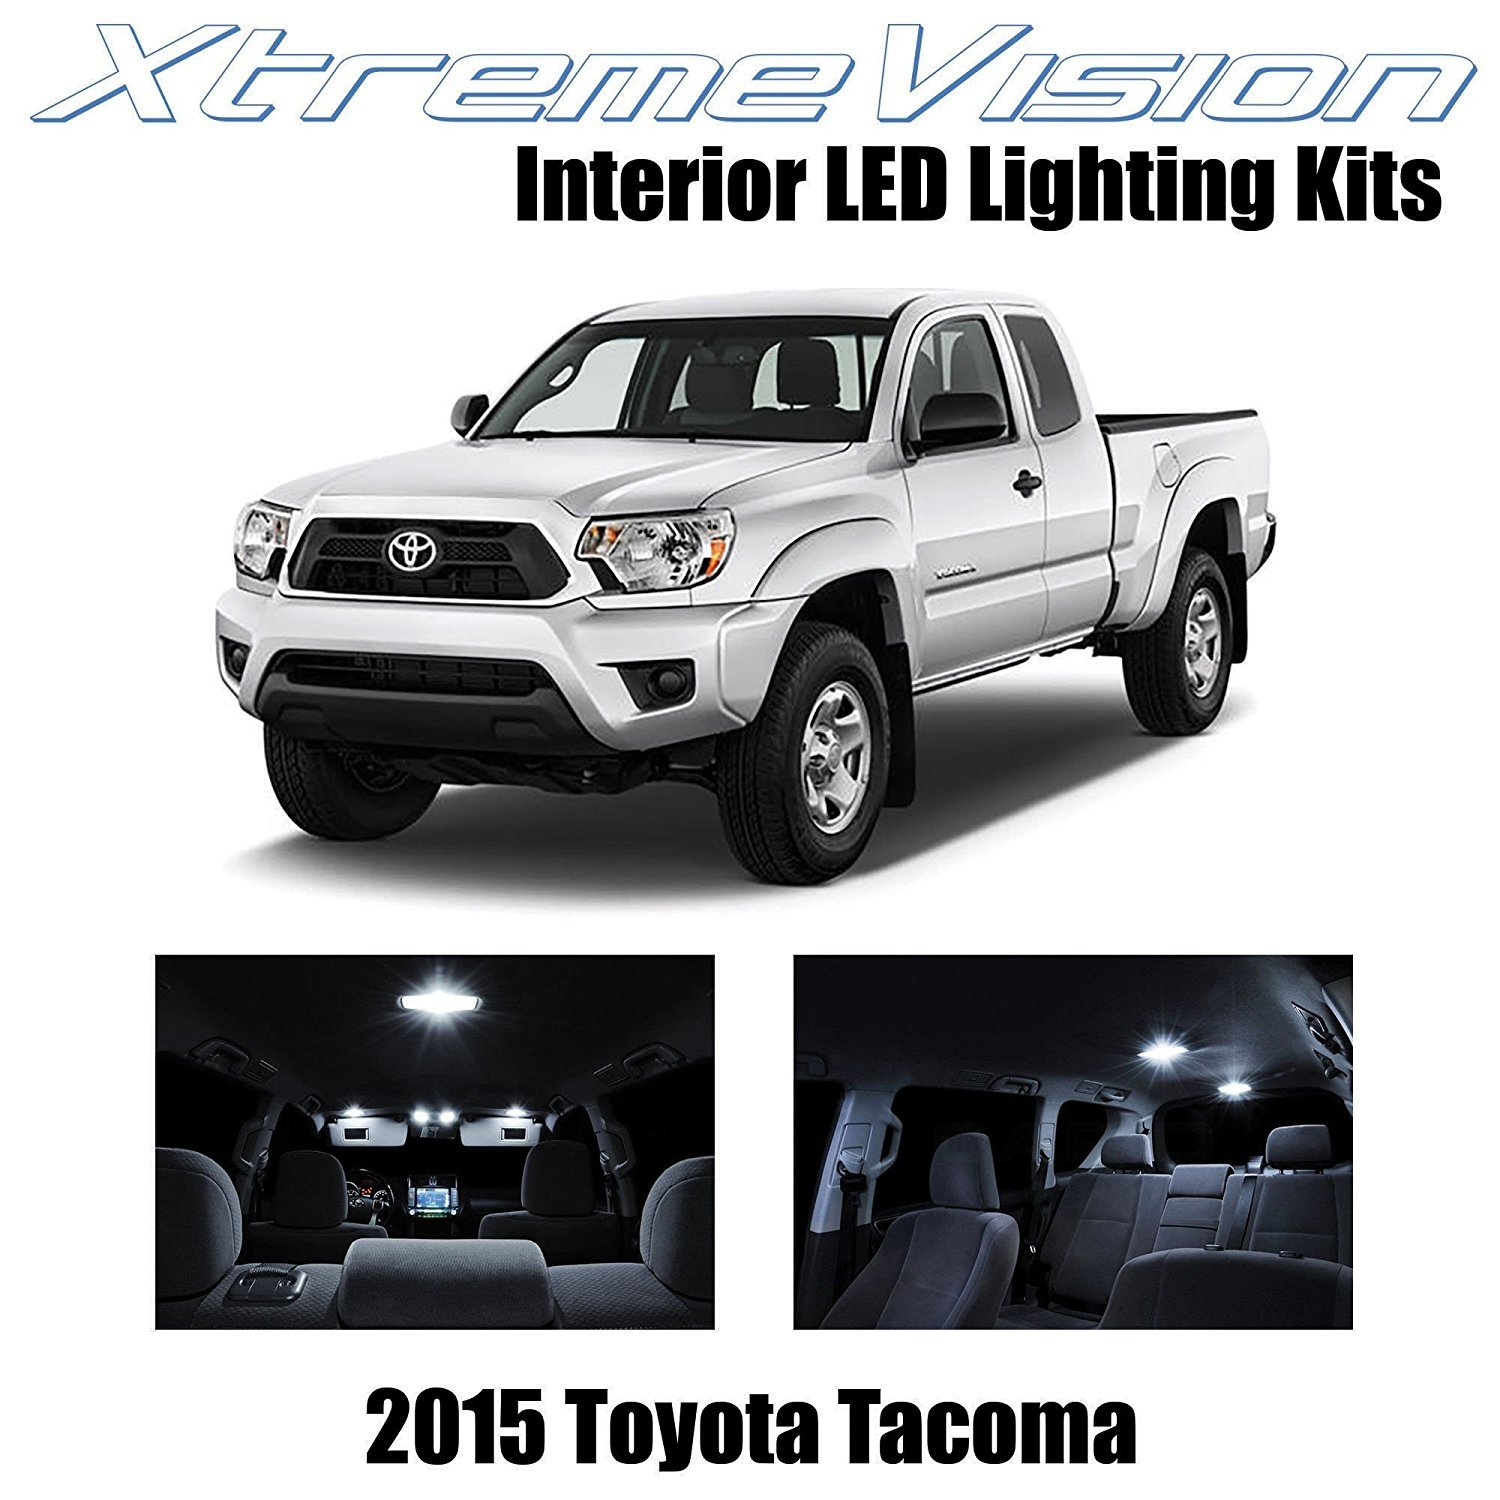 XtremeVision LED for Toyota Tacoma 2015+ (7 Pieces) Pure White Premium Interior LED Kit Package + Installation Tool Tool